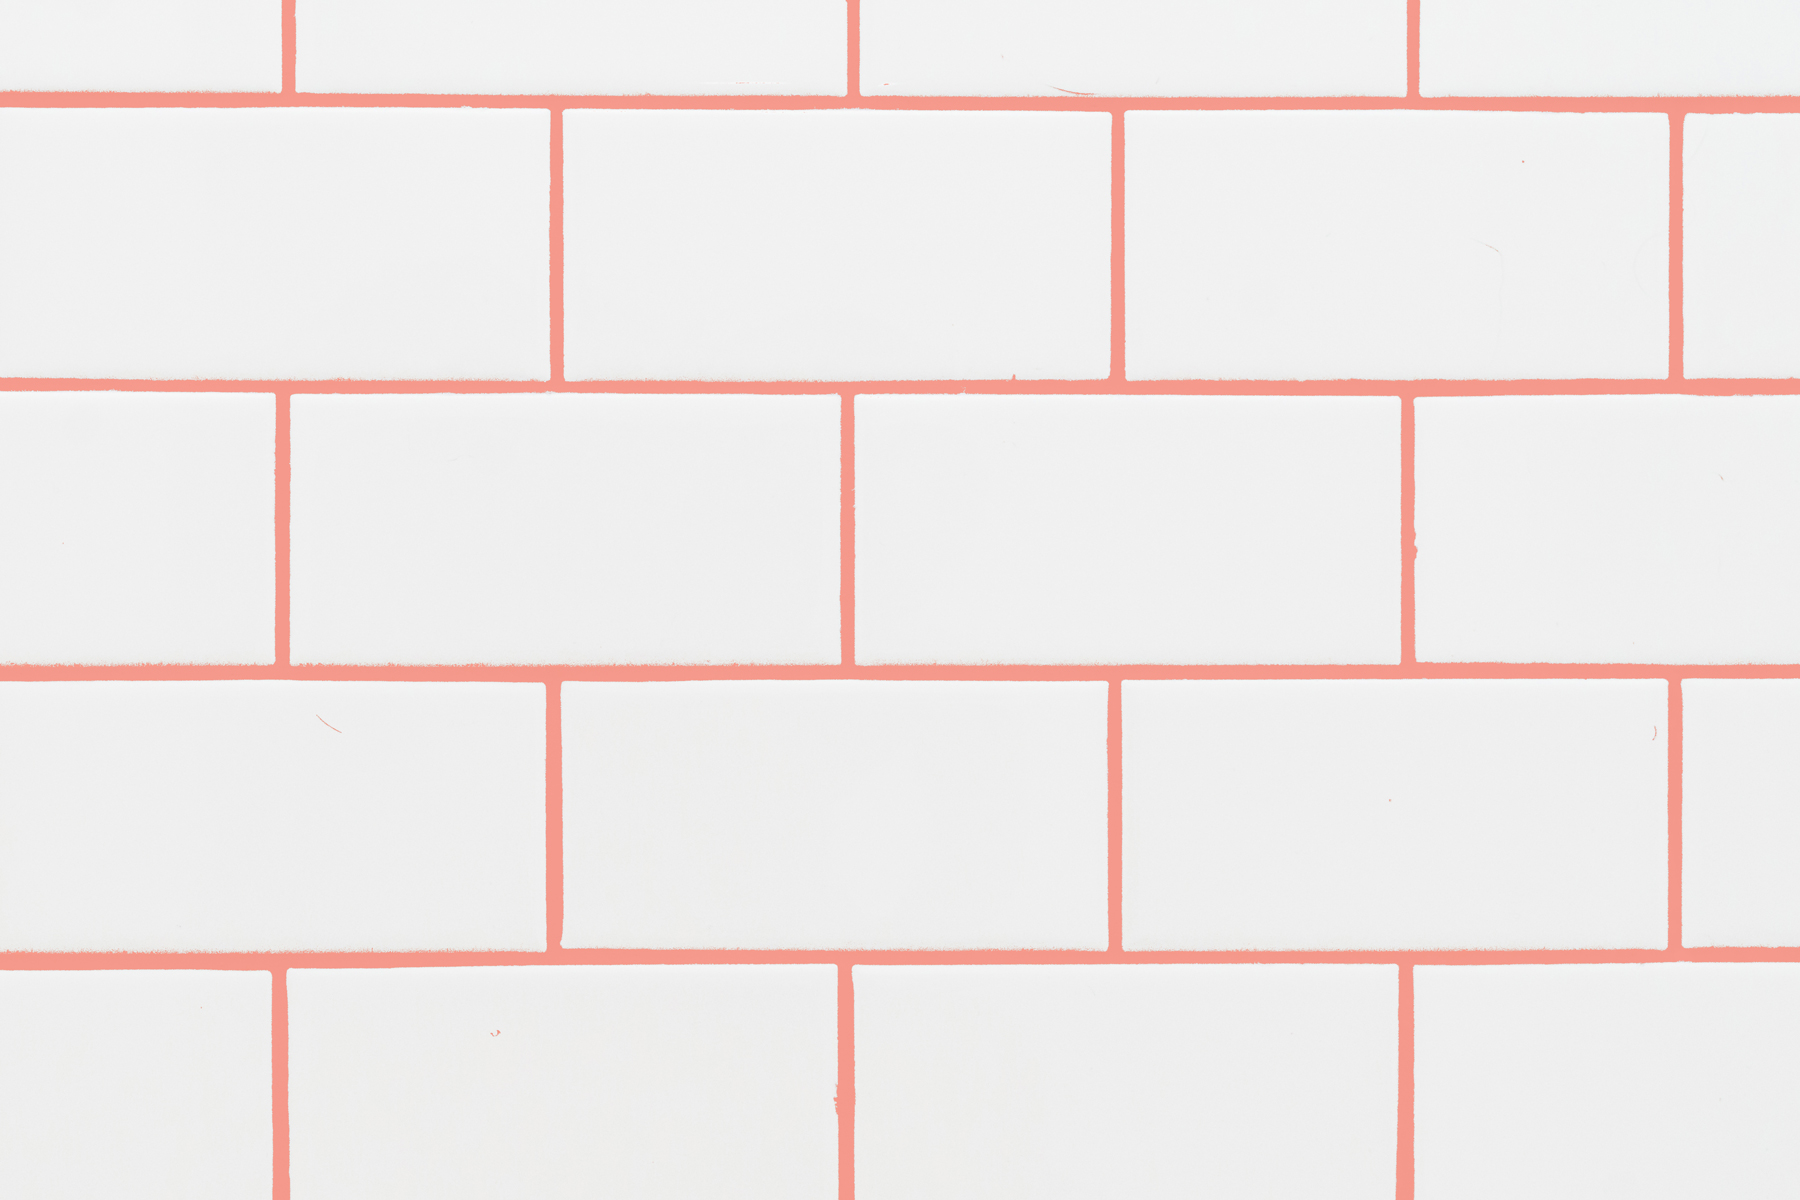 Grout colors - subway tile grout color option